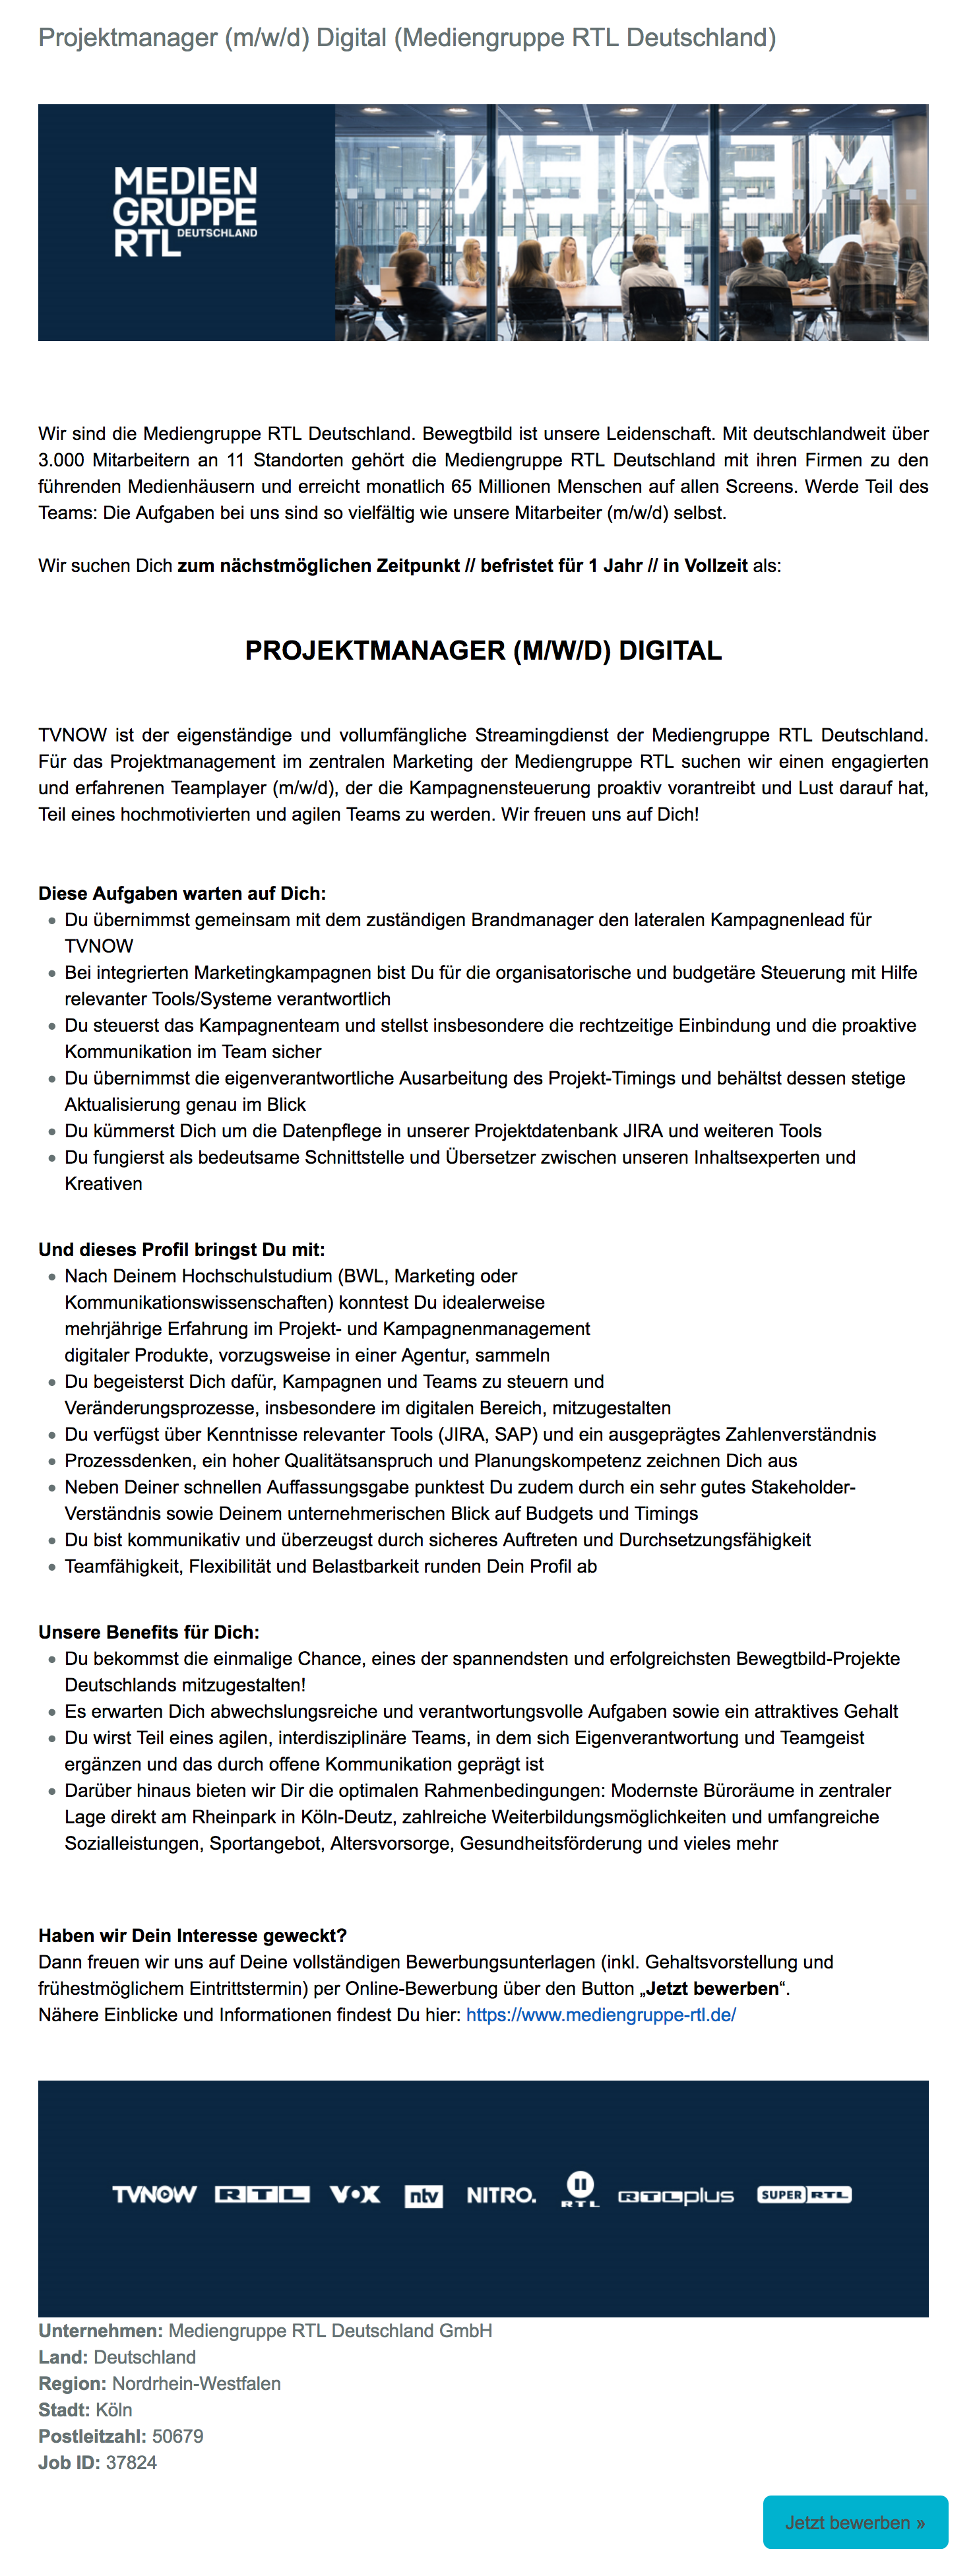 Projektmanager (m/w/d) Digital